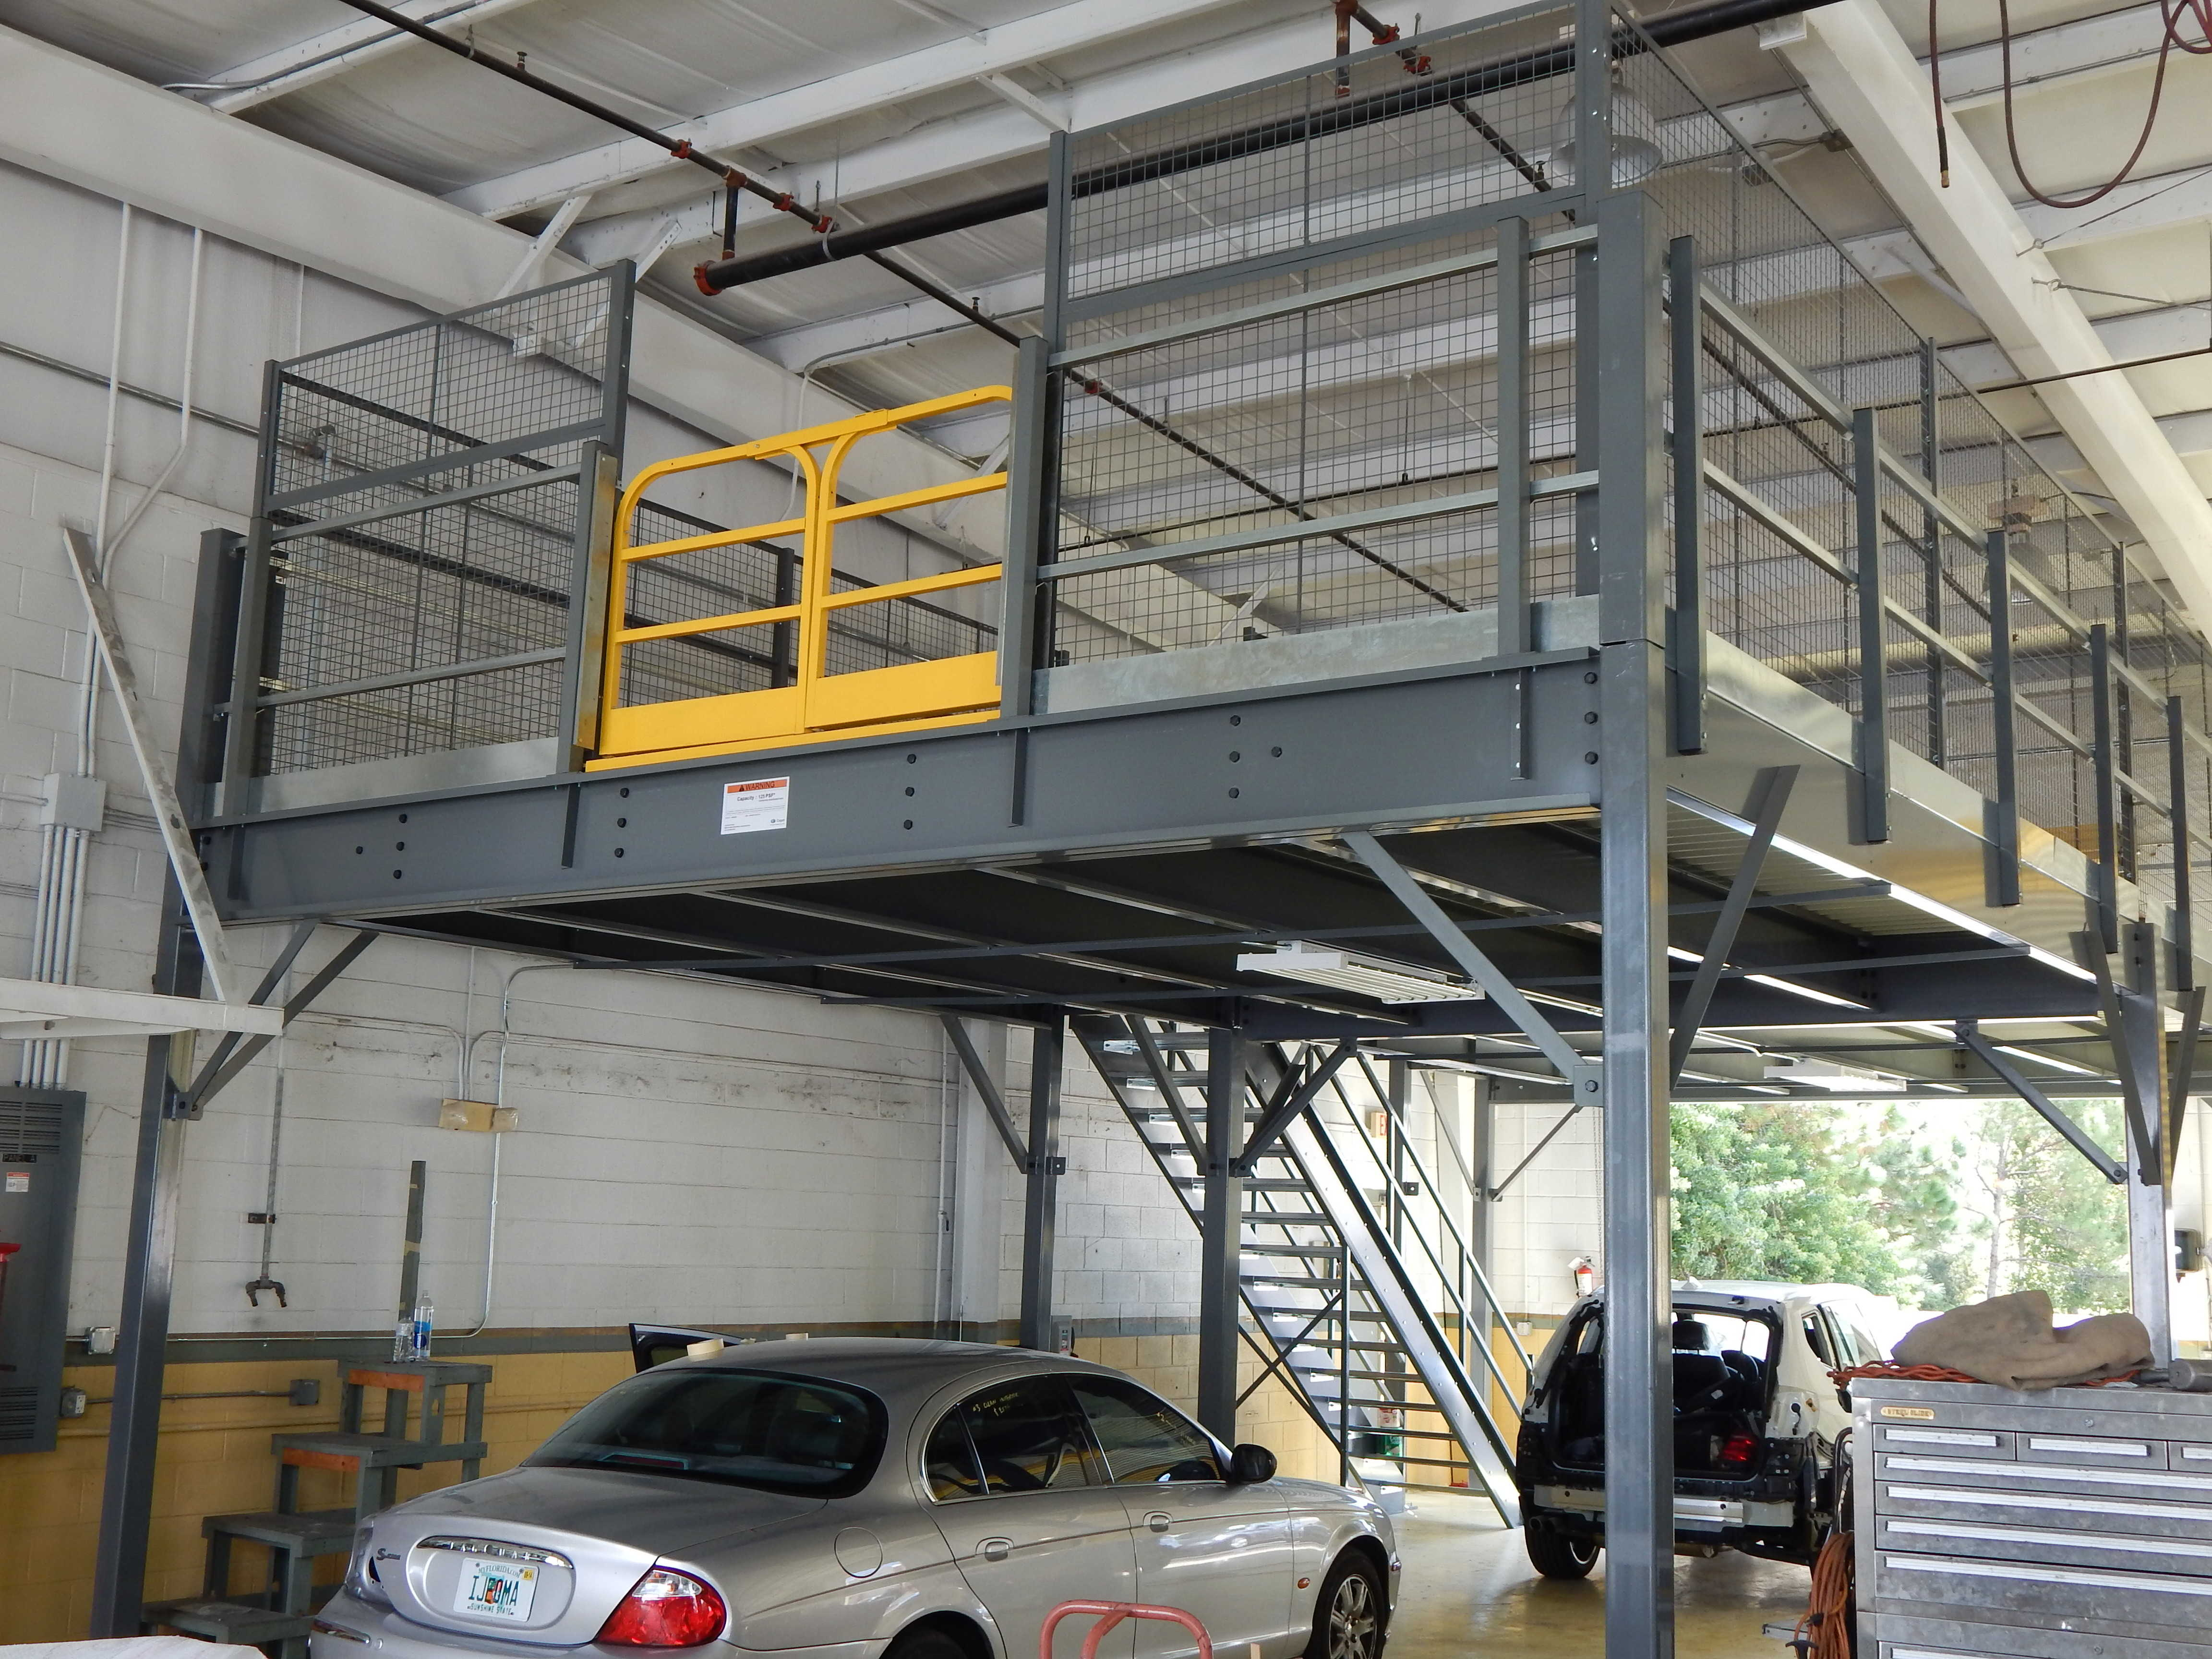 Mezzanine Design and Install | Material Handling - (New & Used) in ...